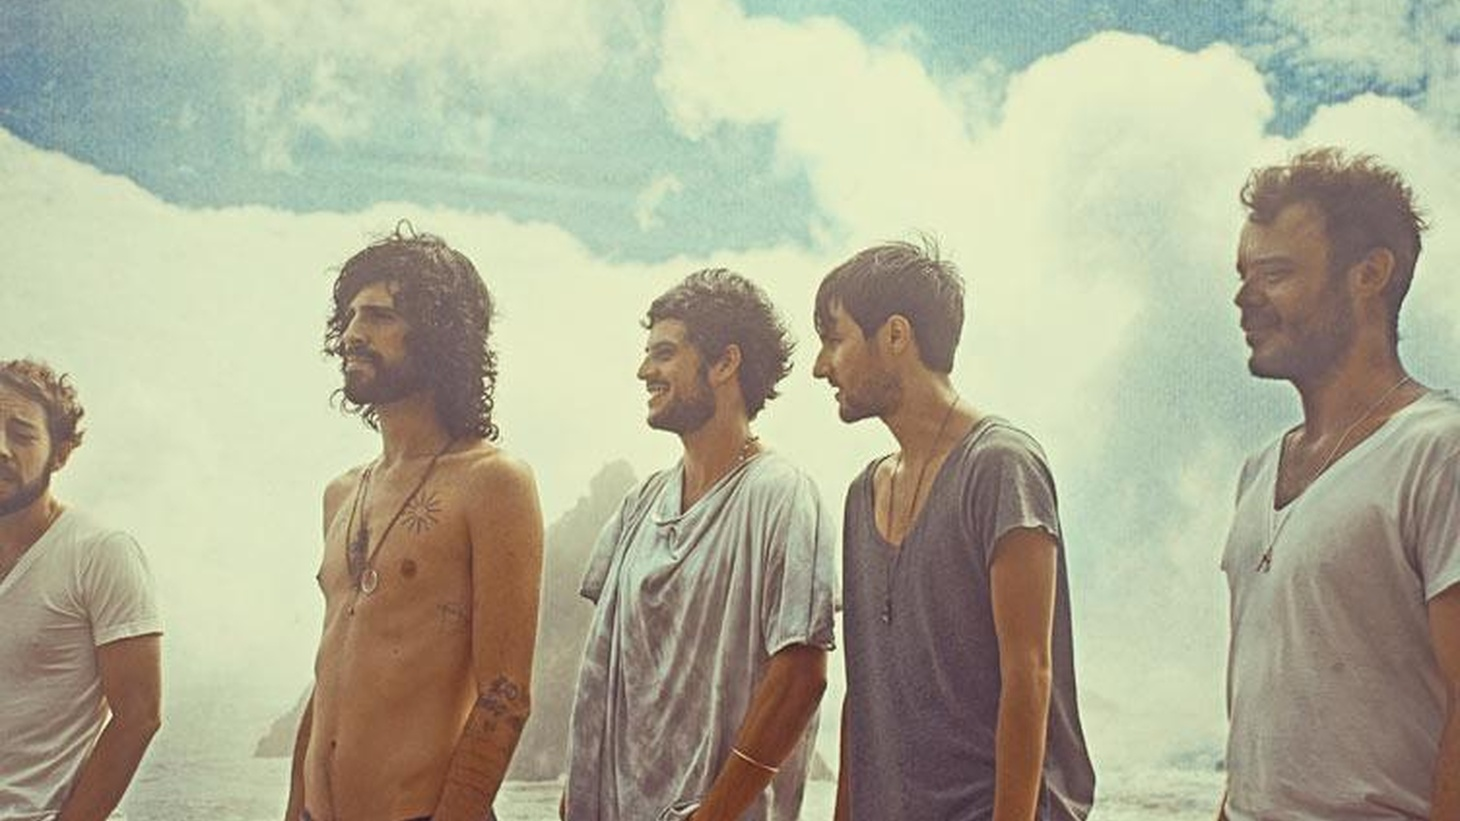 Chameleon Devendra Banhart is able to nimbly sail through What Will We Be with a wide range of genres, and is wildly humorous and genuinely musical...